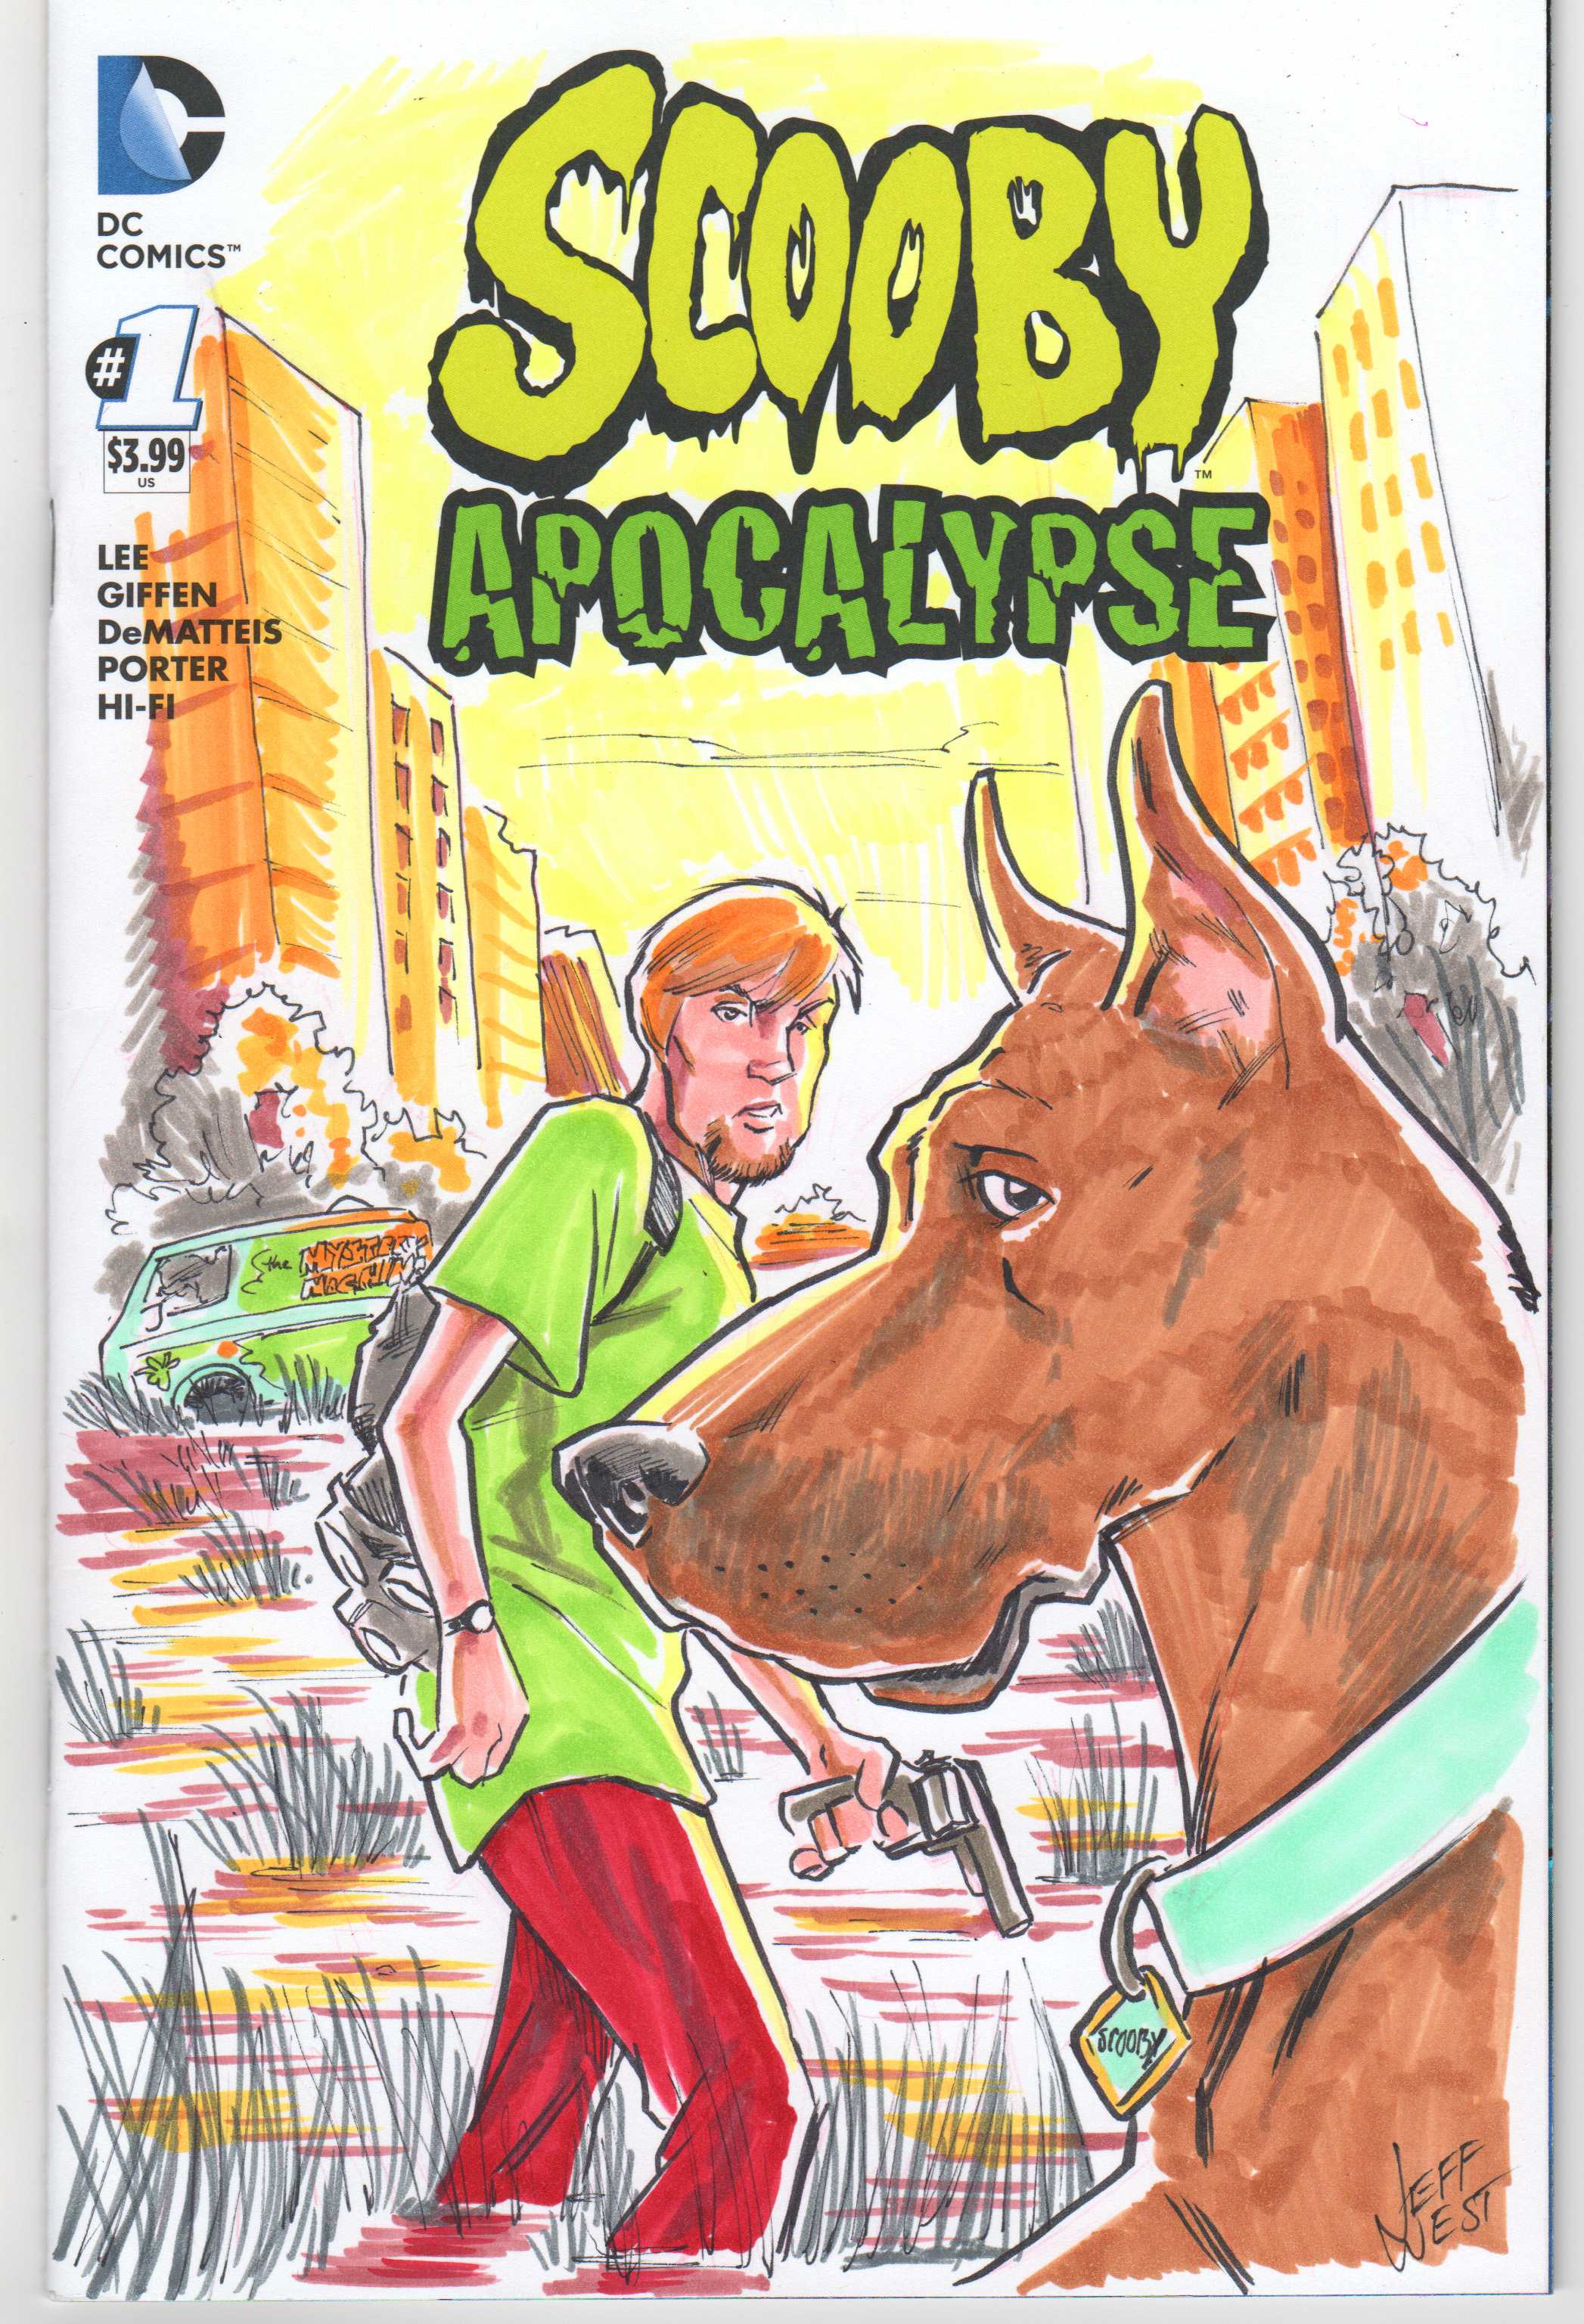 Scooby cover color.jpg